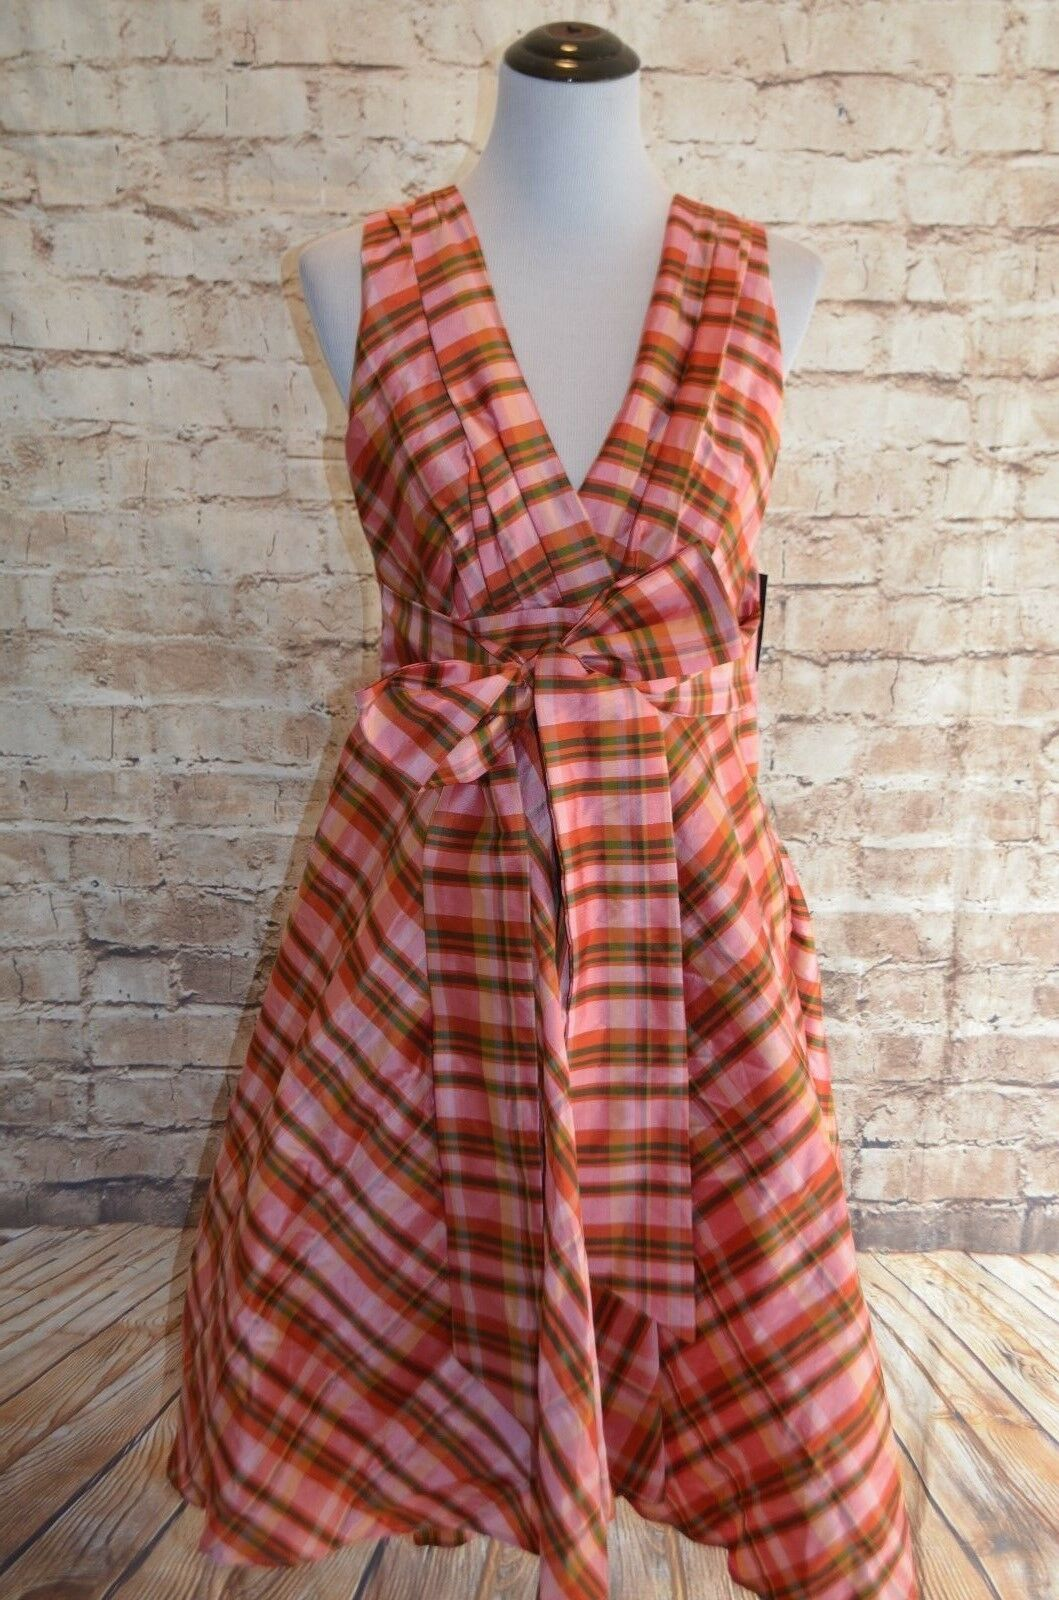 Modcloth The Time is Wow dress NWTD 10 Eva Franco Coconinno pink plaid